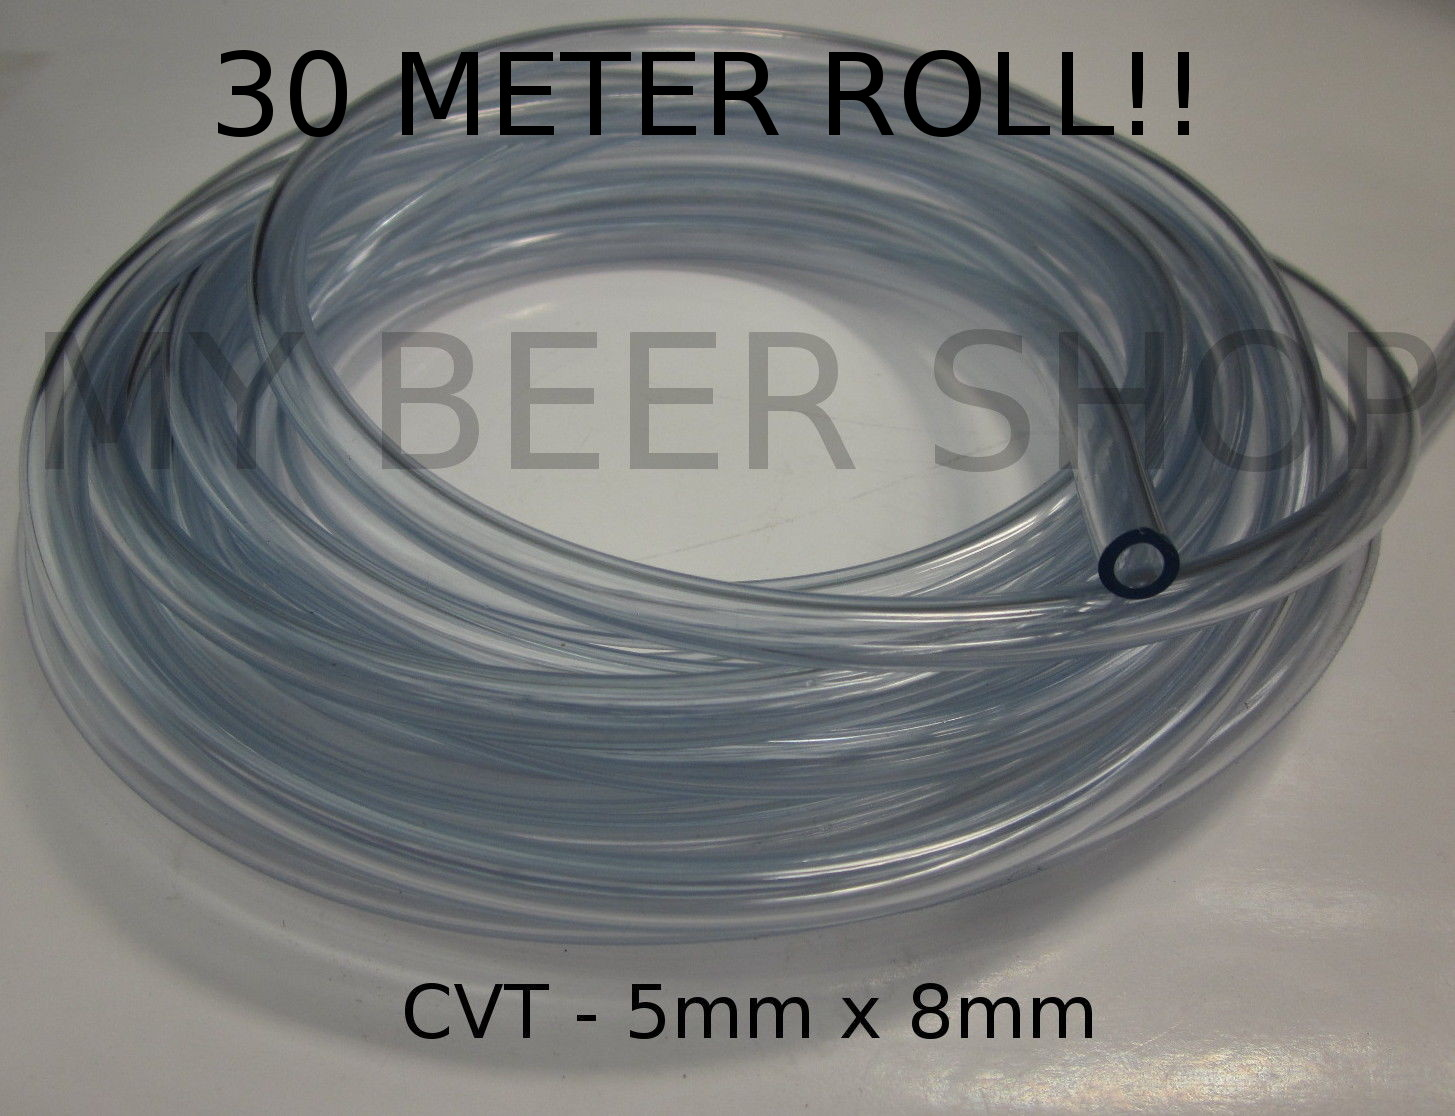 30M!! 5mm ID 8mm OD FOOD GRADE CLEAR FLEX VINYL TUBE HOSE HOSING